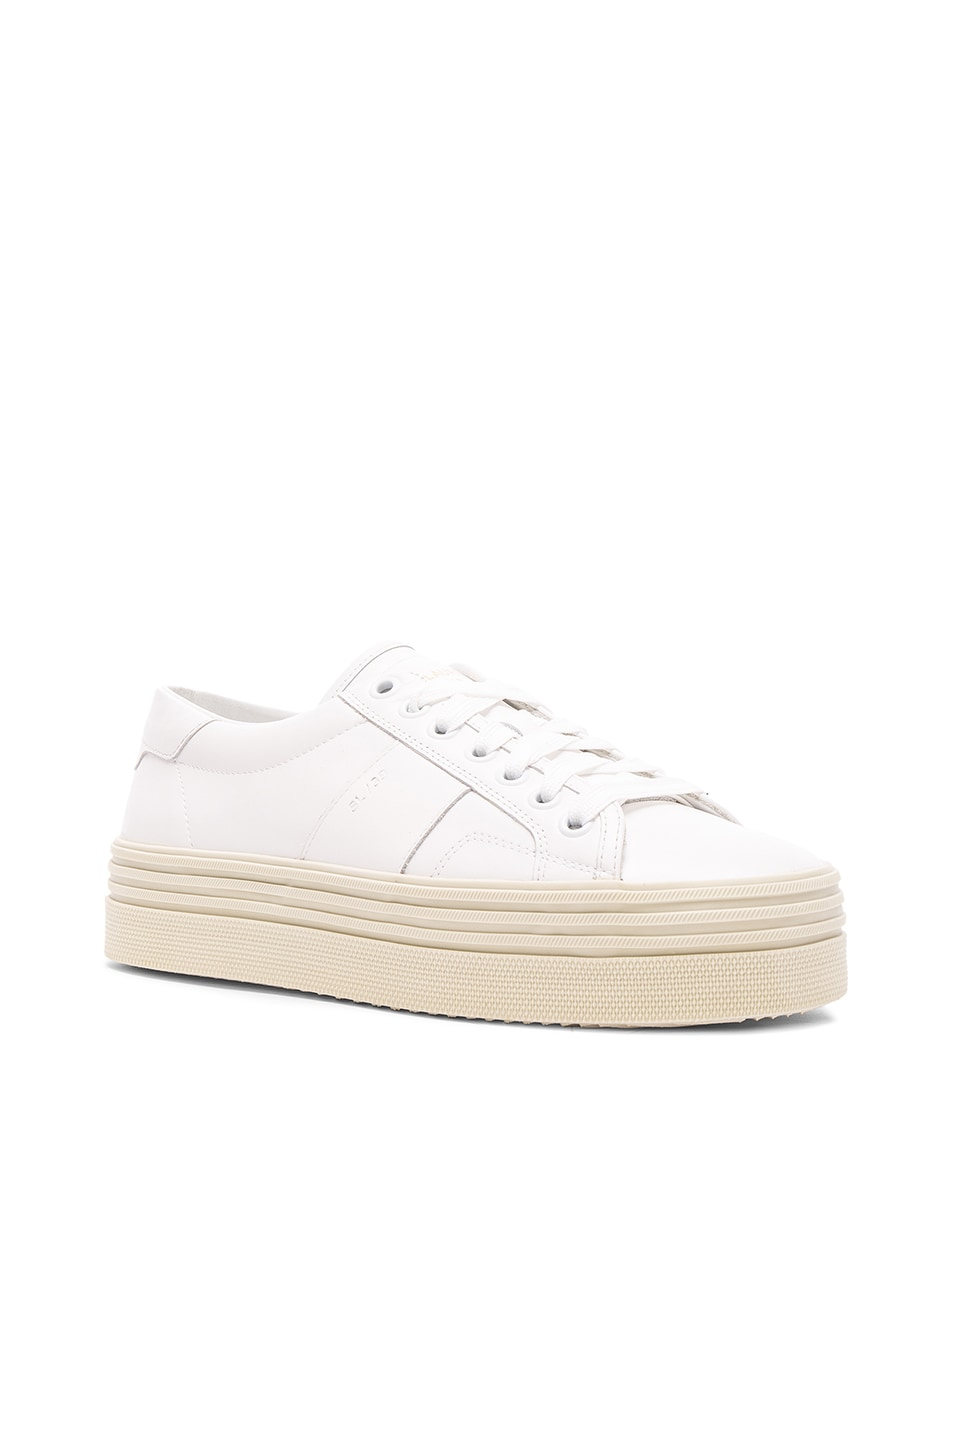 Image 2 of Saint Laurent Leather Court Classic Platform Sneakers in Off White